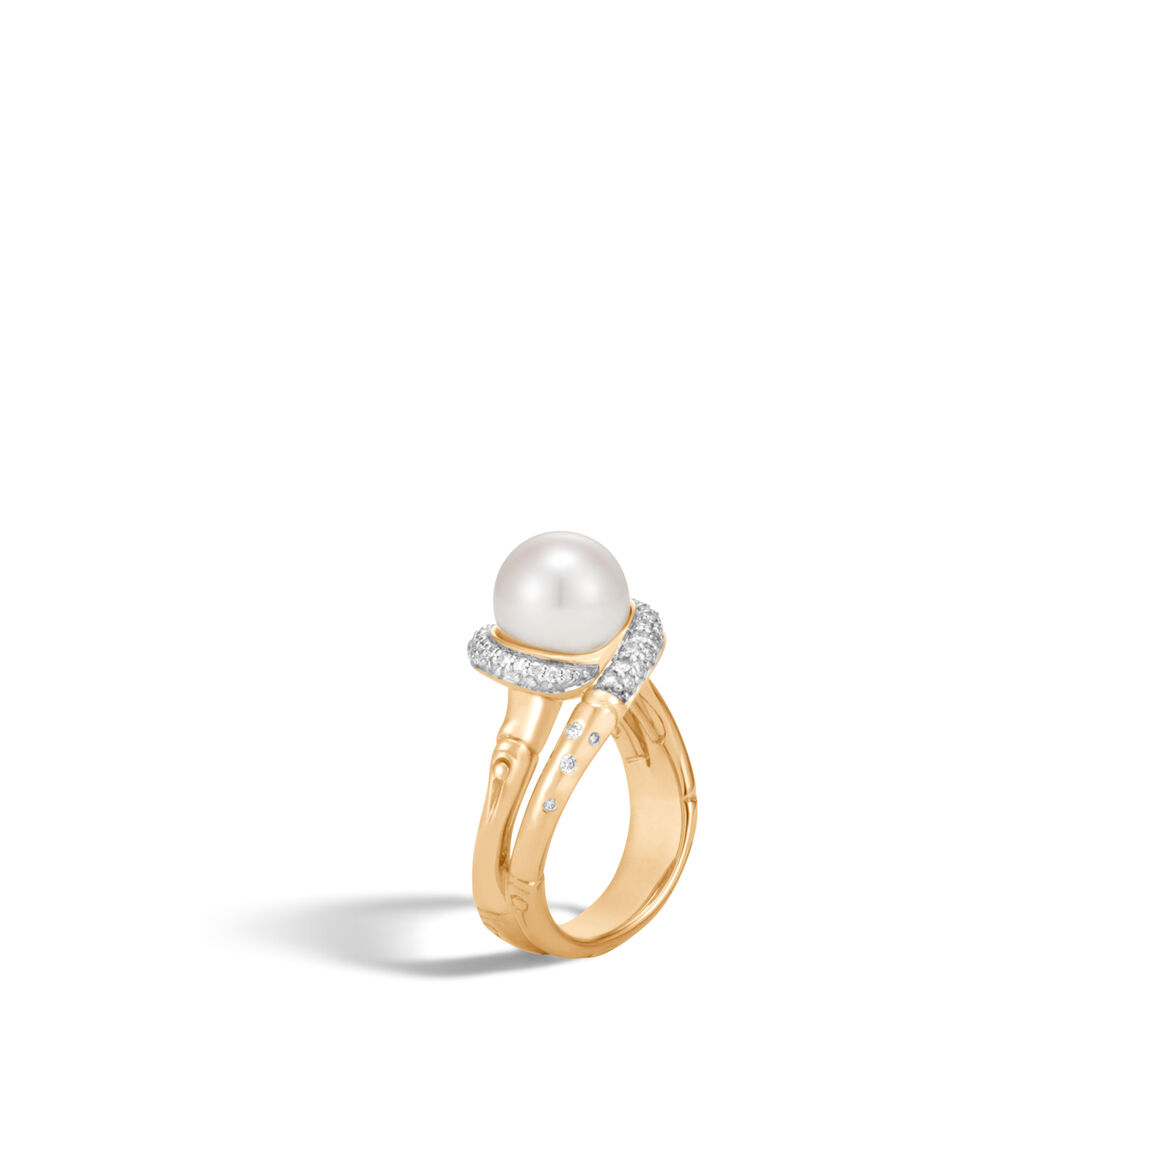 Bamboo Ring in 18K Gold with 9.5-10MM Pearl, Dia